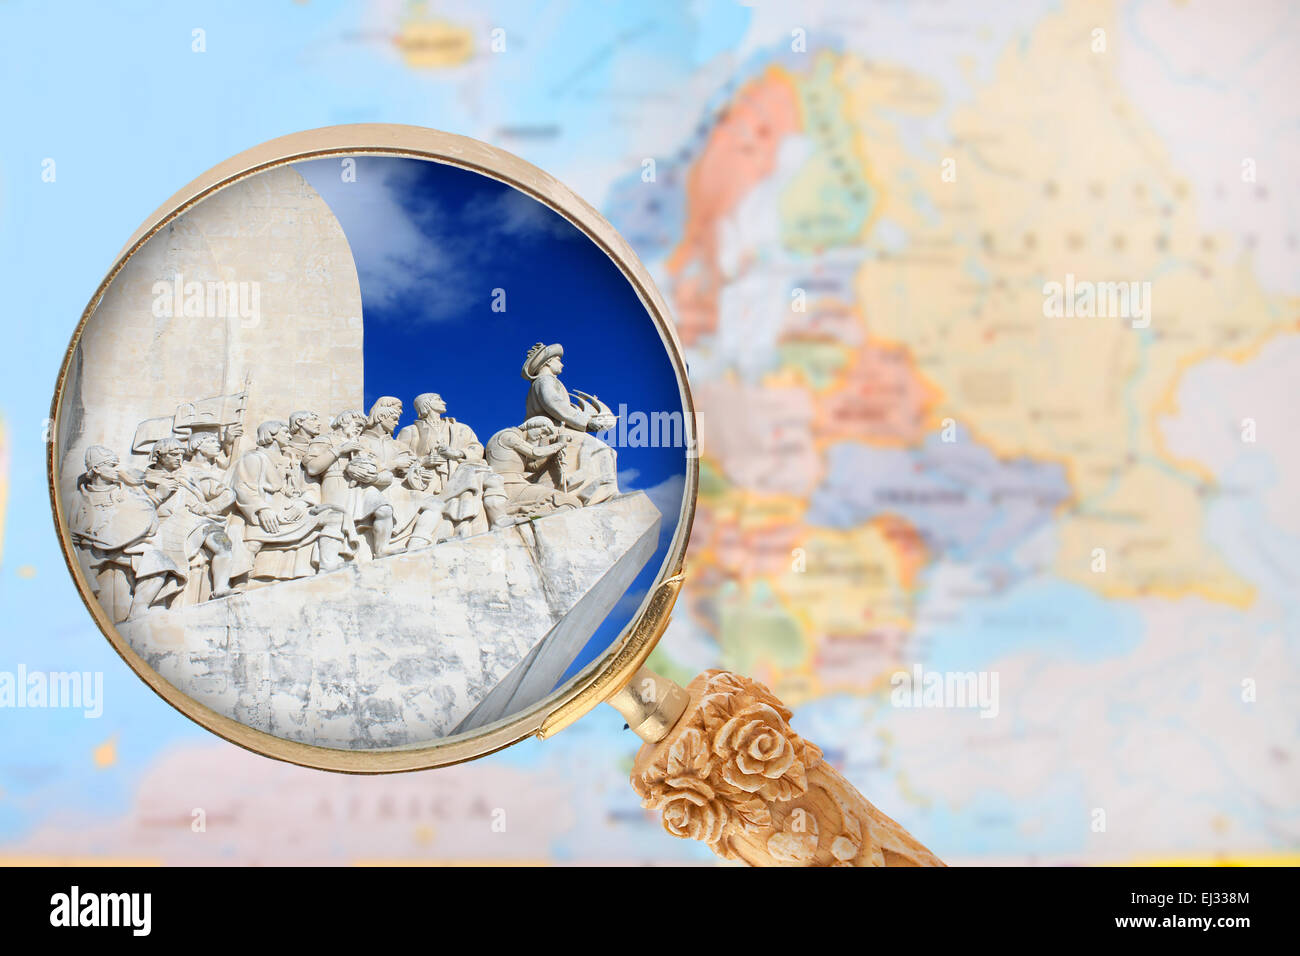 Looking in on the Explorers monument in  Portugal with a magnifying glass or loop with European map in the background - Stock Image